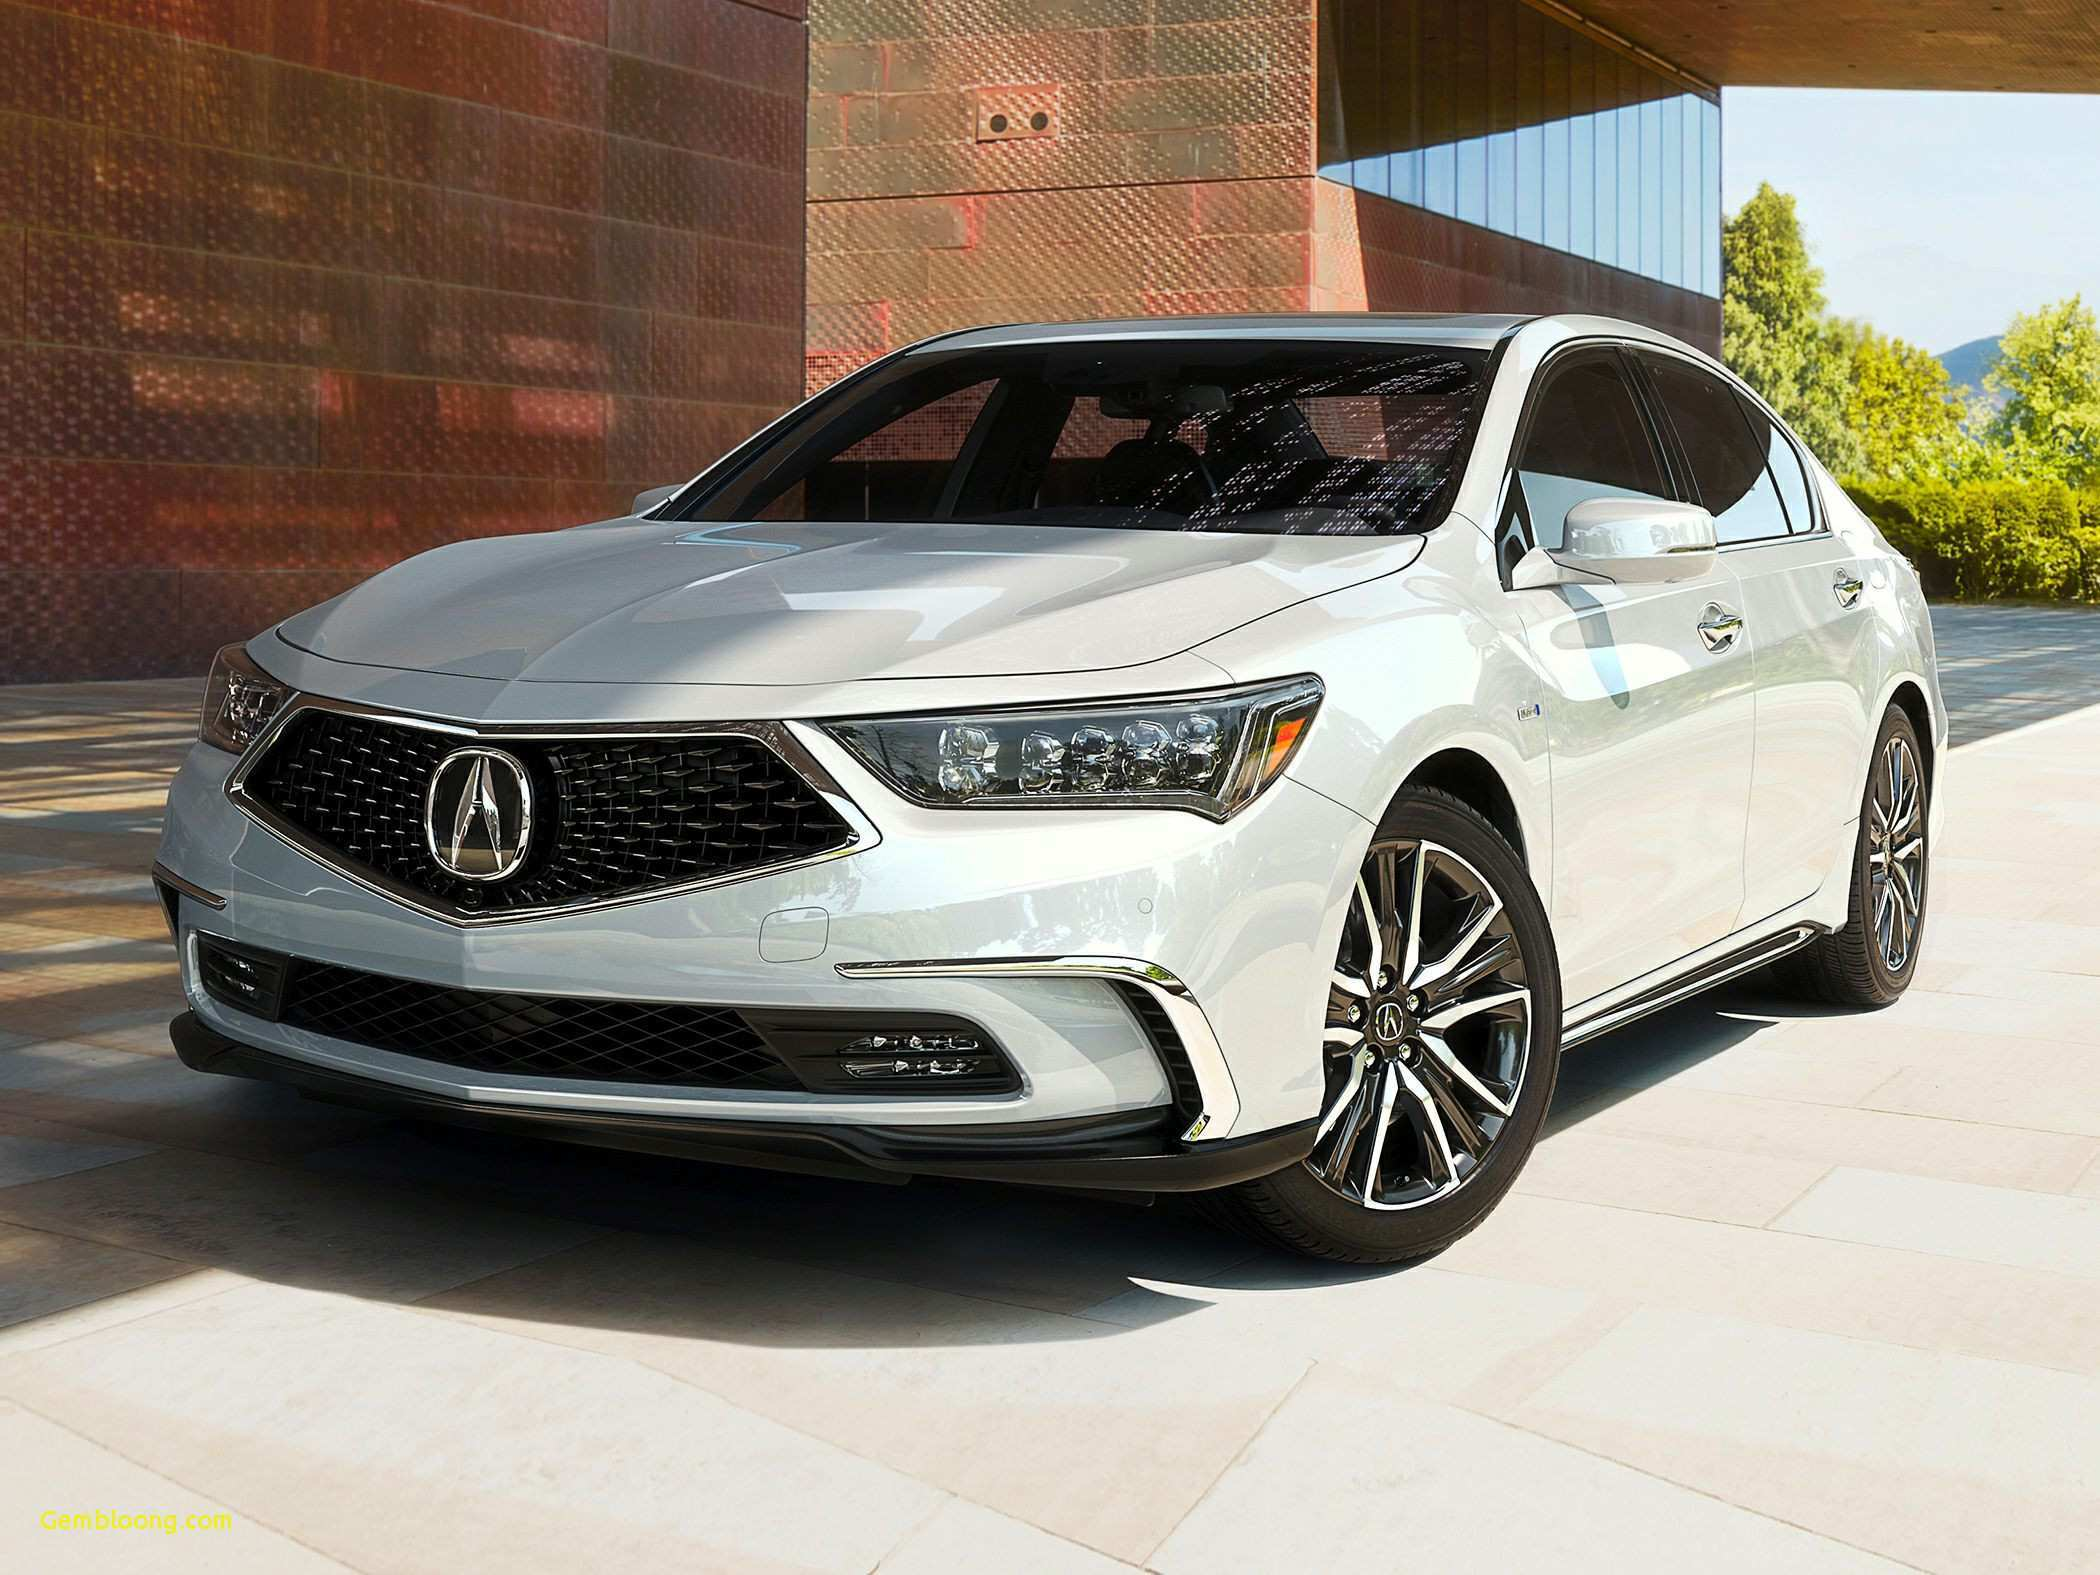 87 The Best 2020 Buick Regal Gs Coupe New Model And Performance